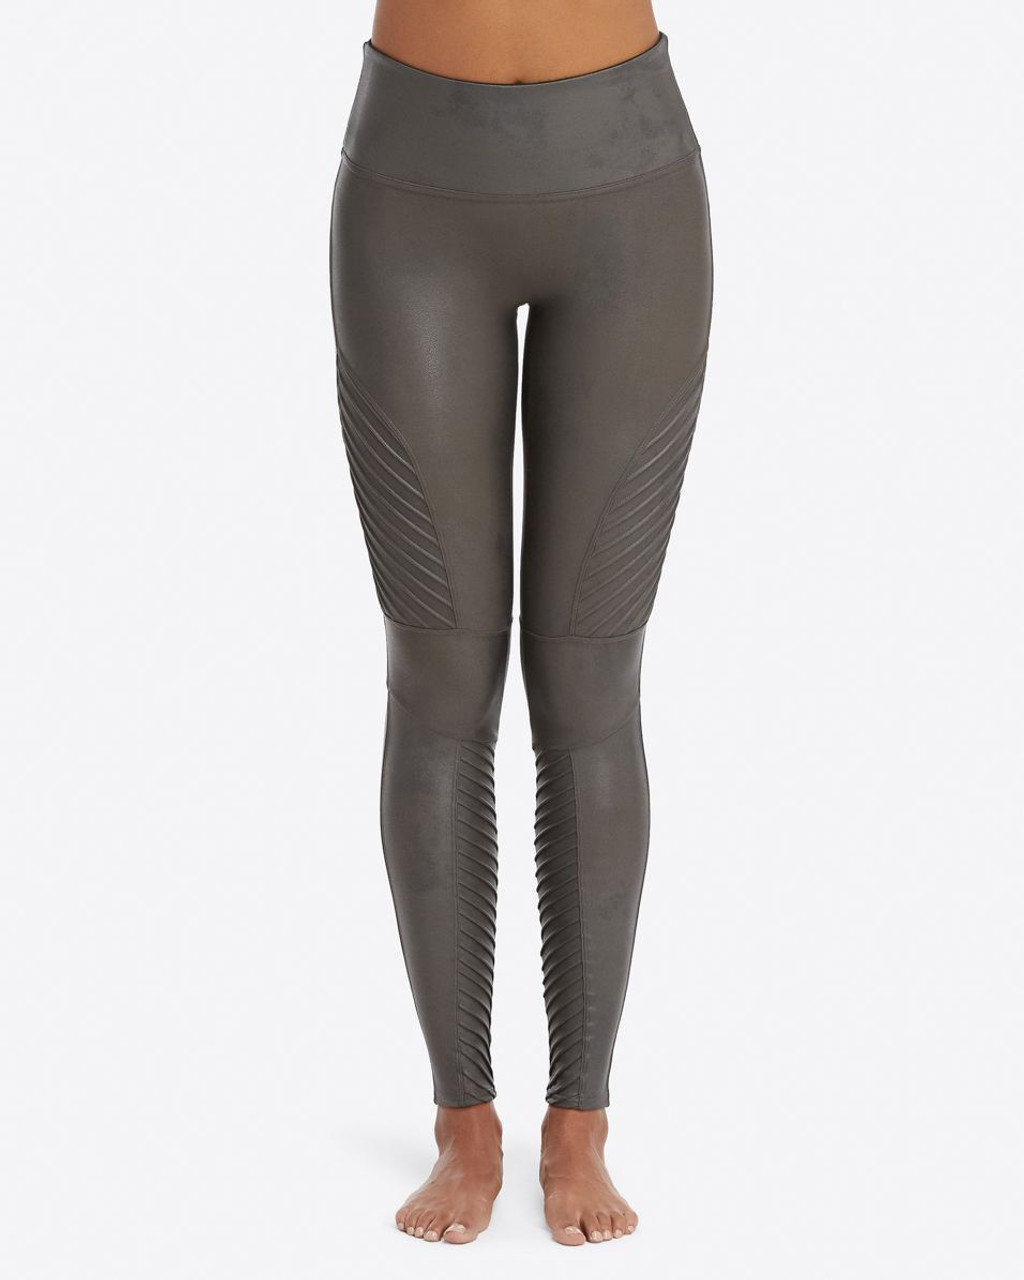 3485b0a4f72b8 Spanx | Faux Leather Moto Leggings in Gunmetal - Ginny Marie's